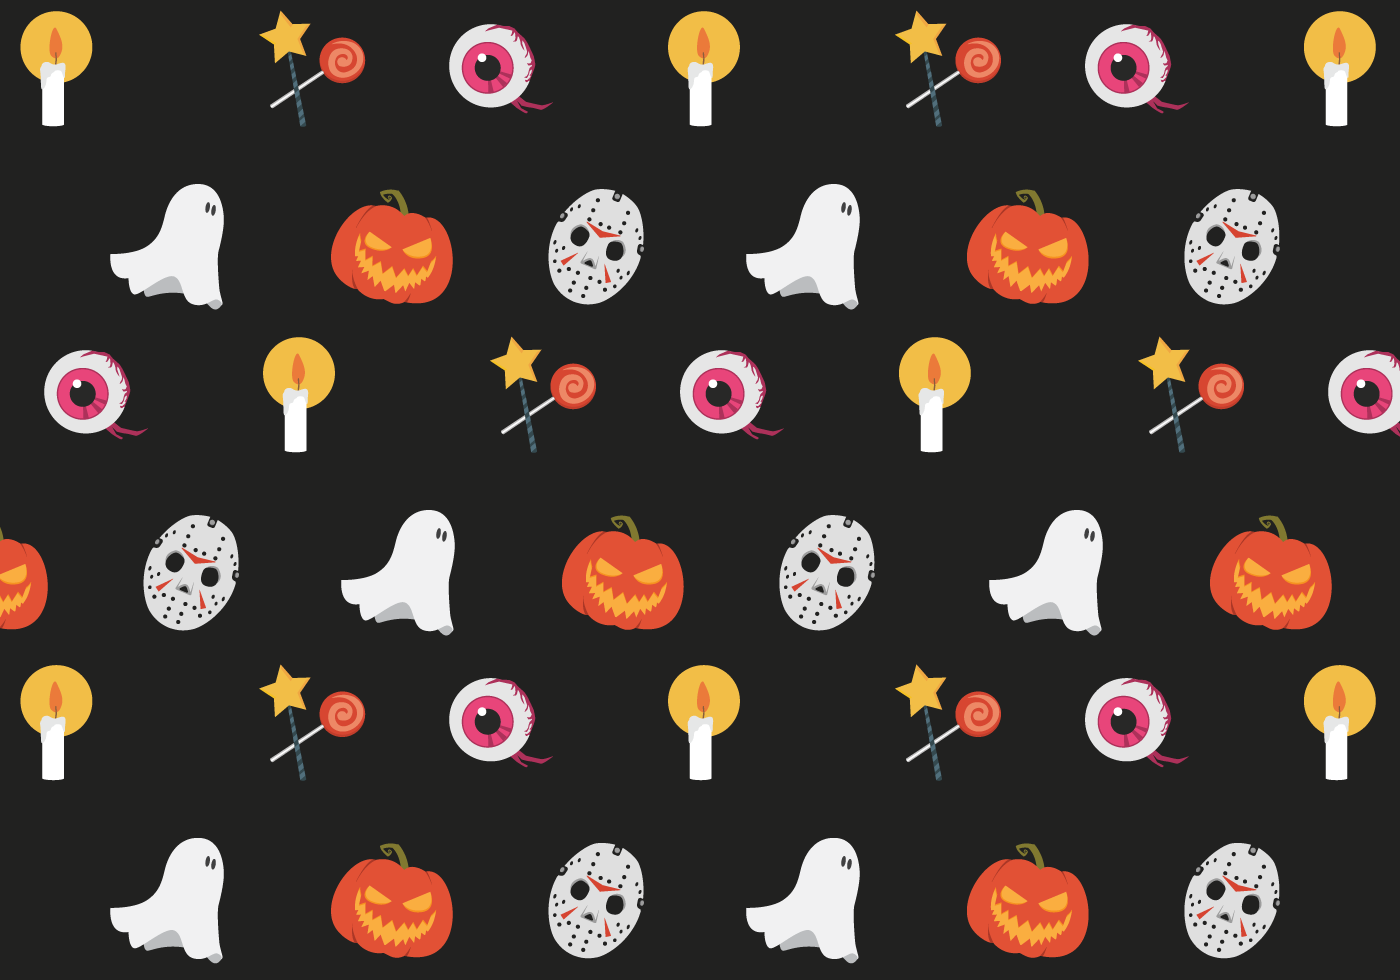 free vector pattern halloween download free vector art candy corn clip art fun candy corn clipart black and white